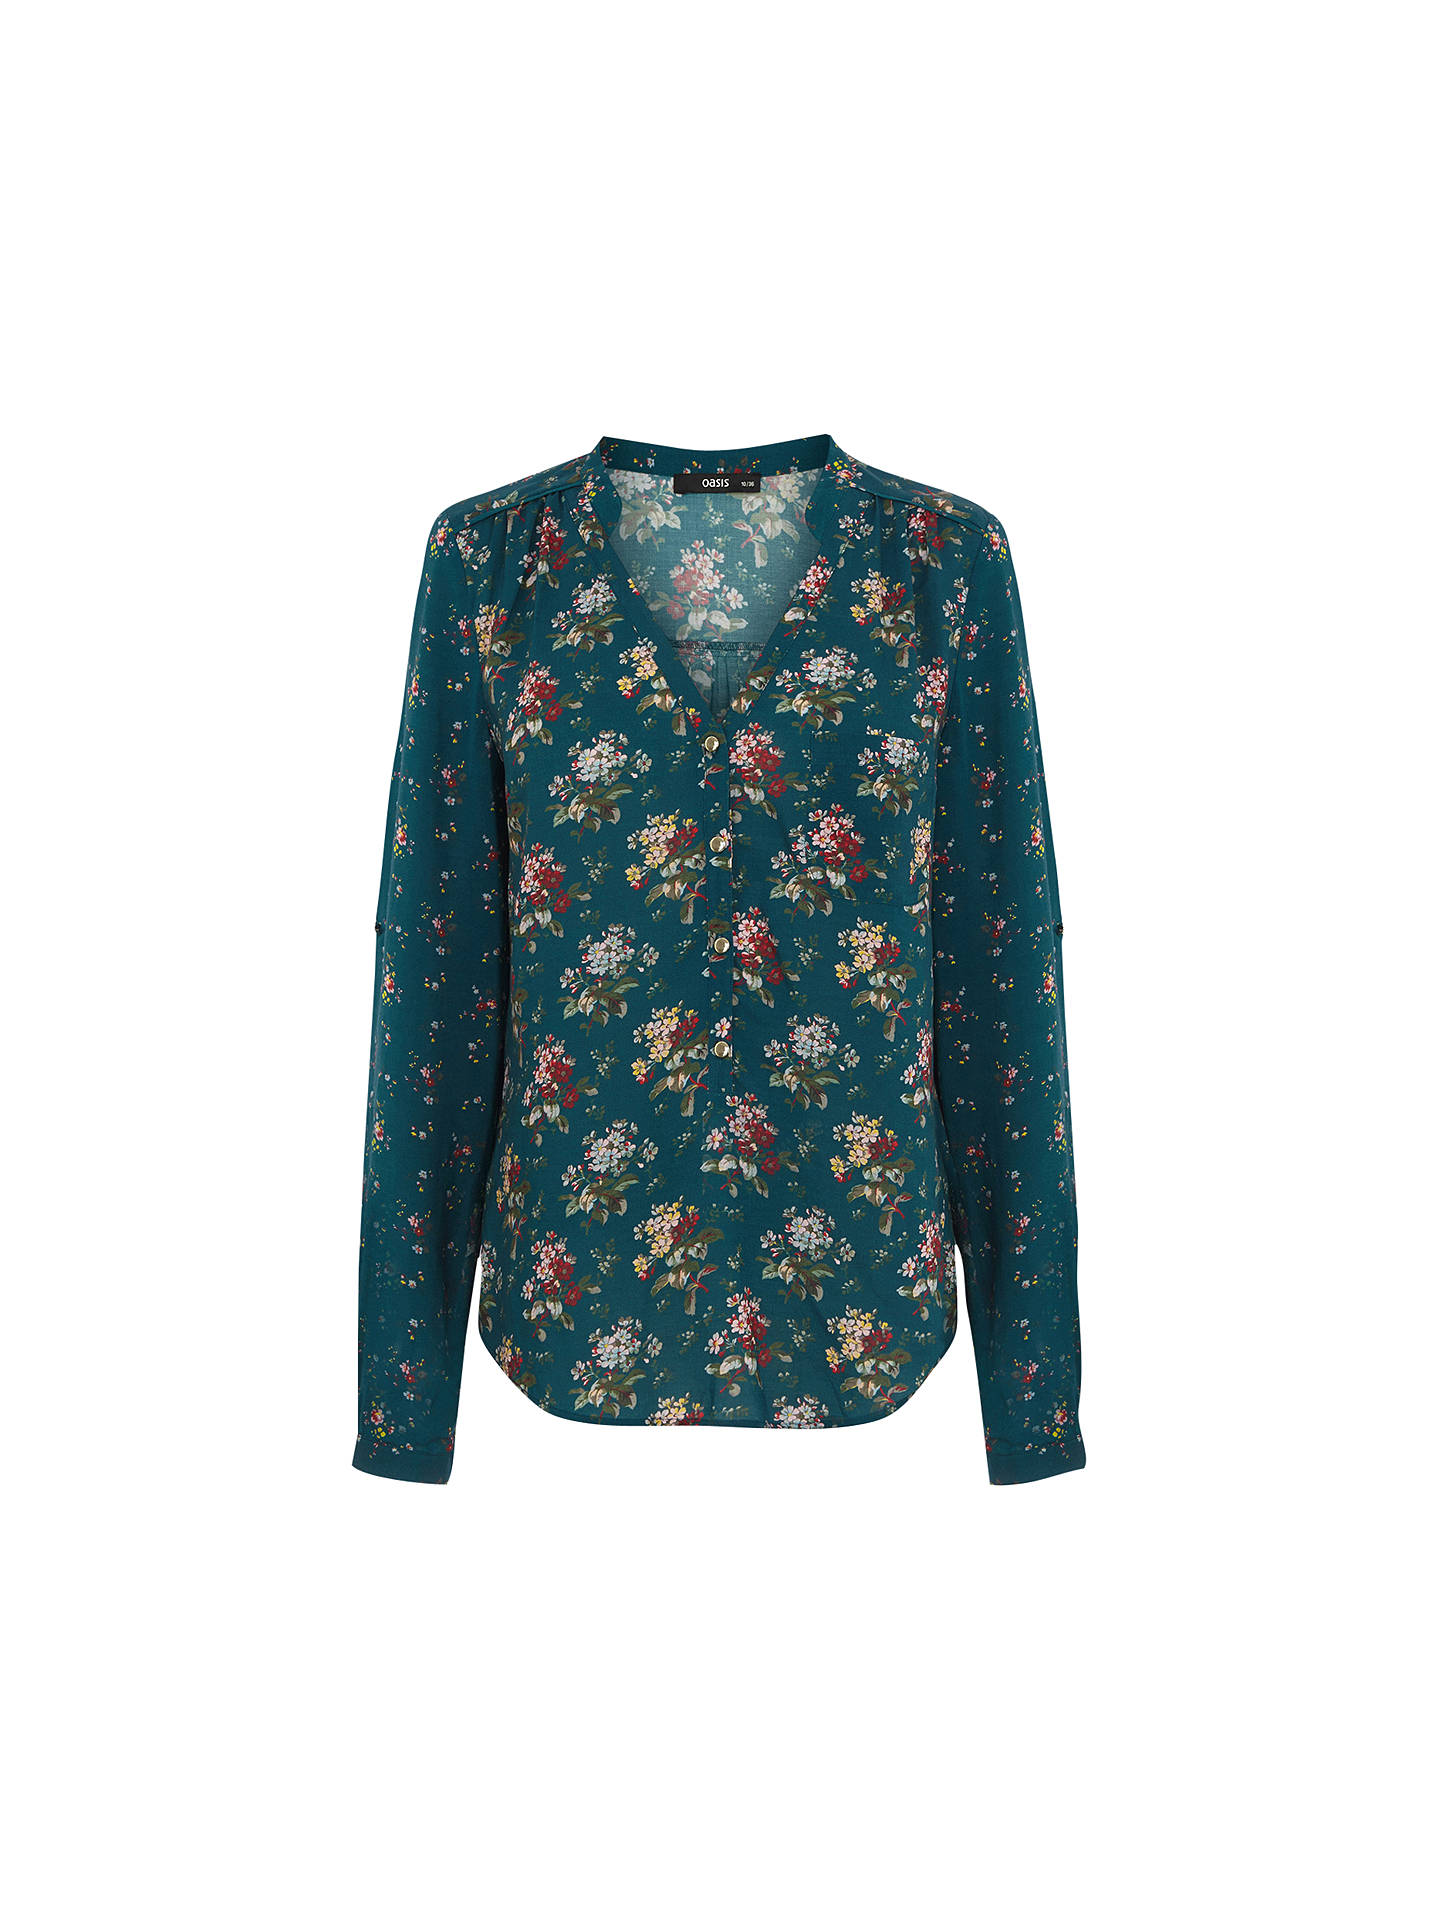 22e40be11d6208 BuyOasis Patched Ditsy Print Shirt